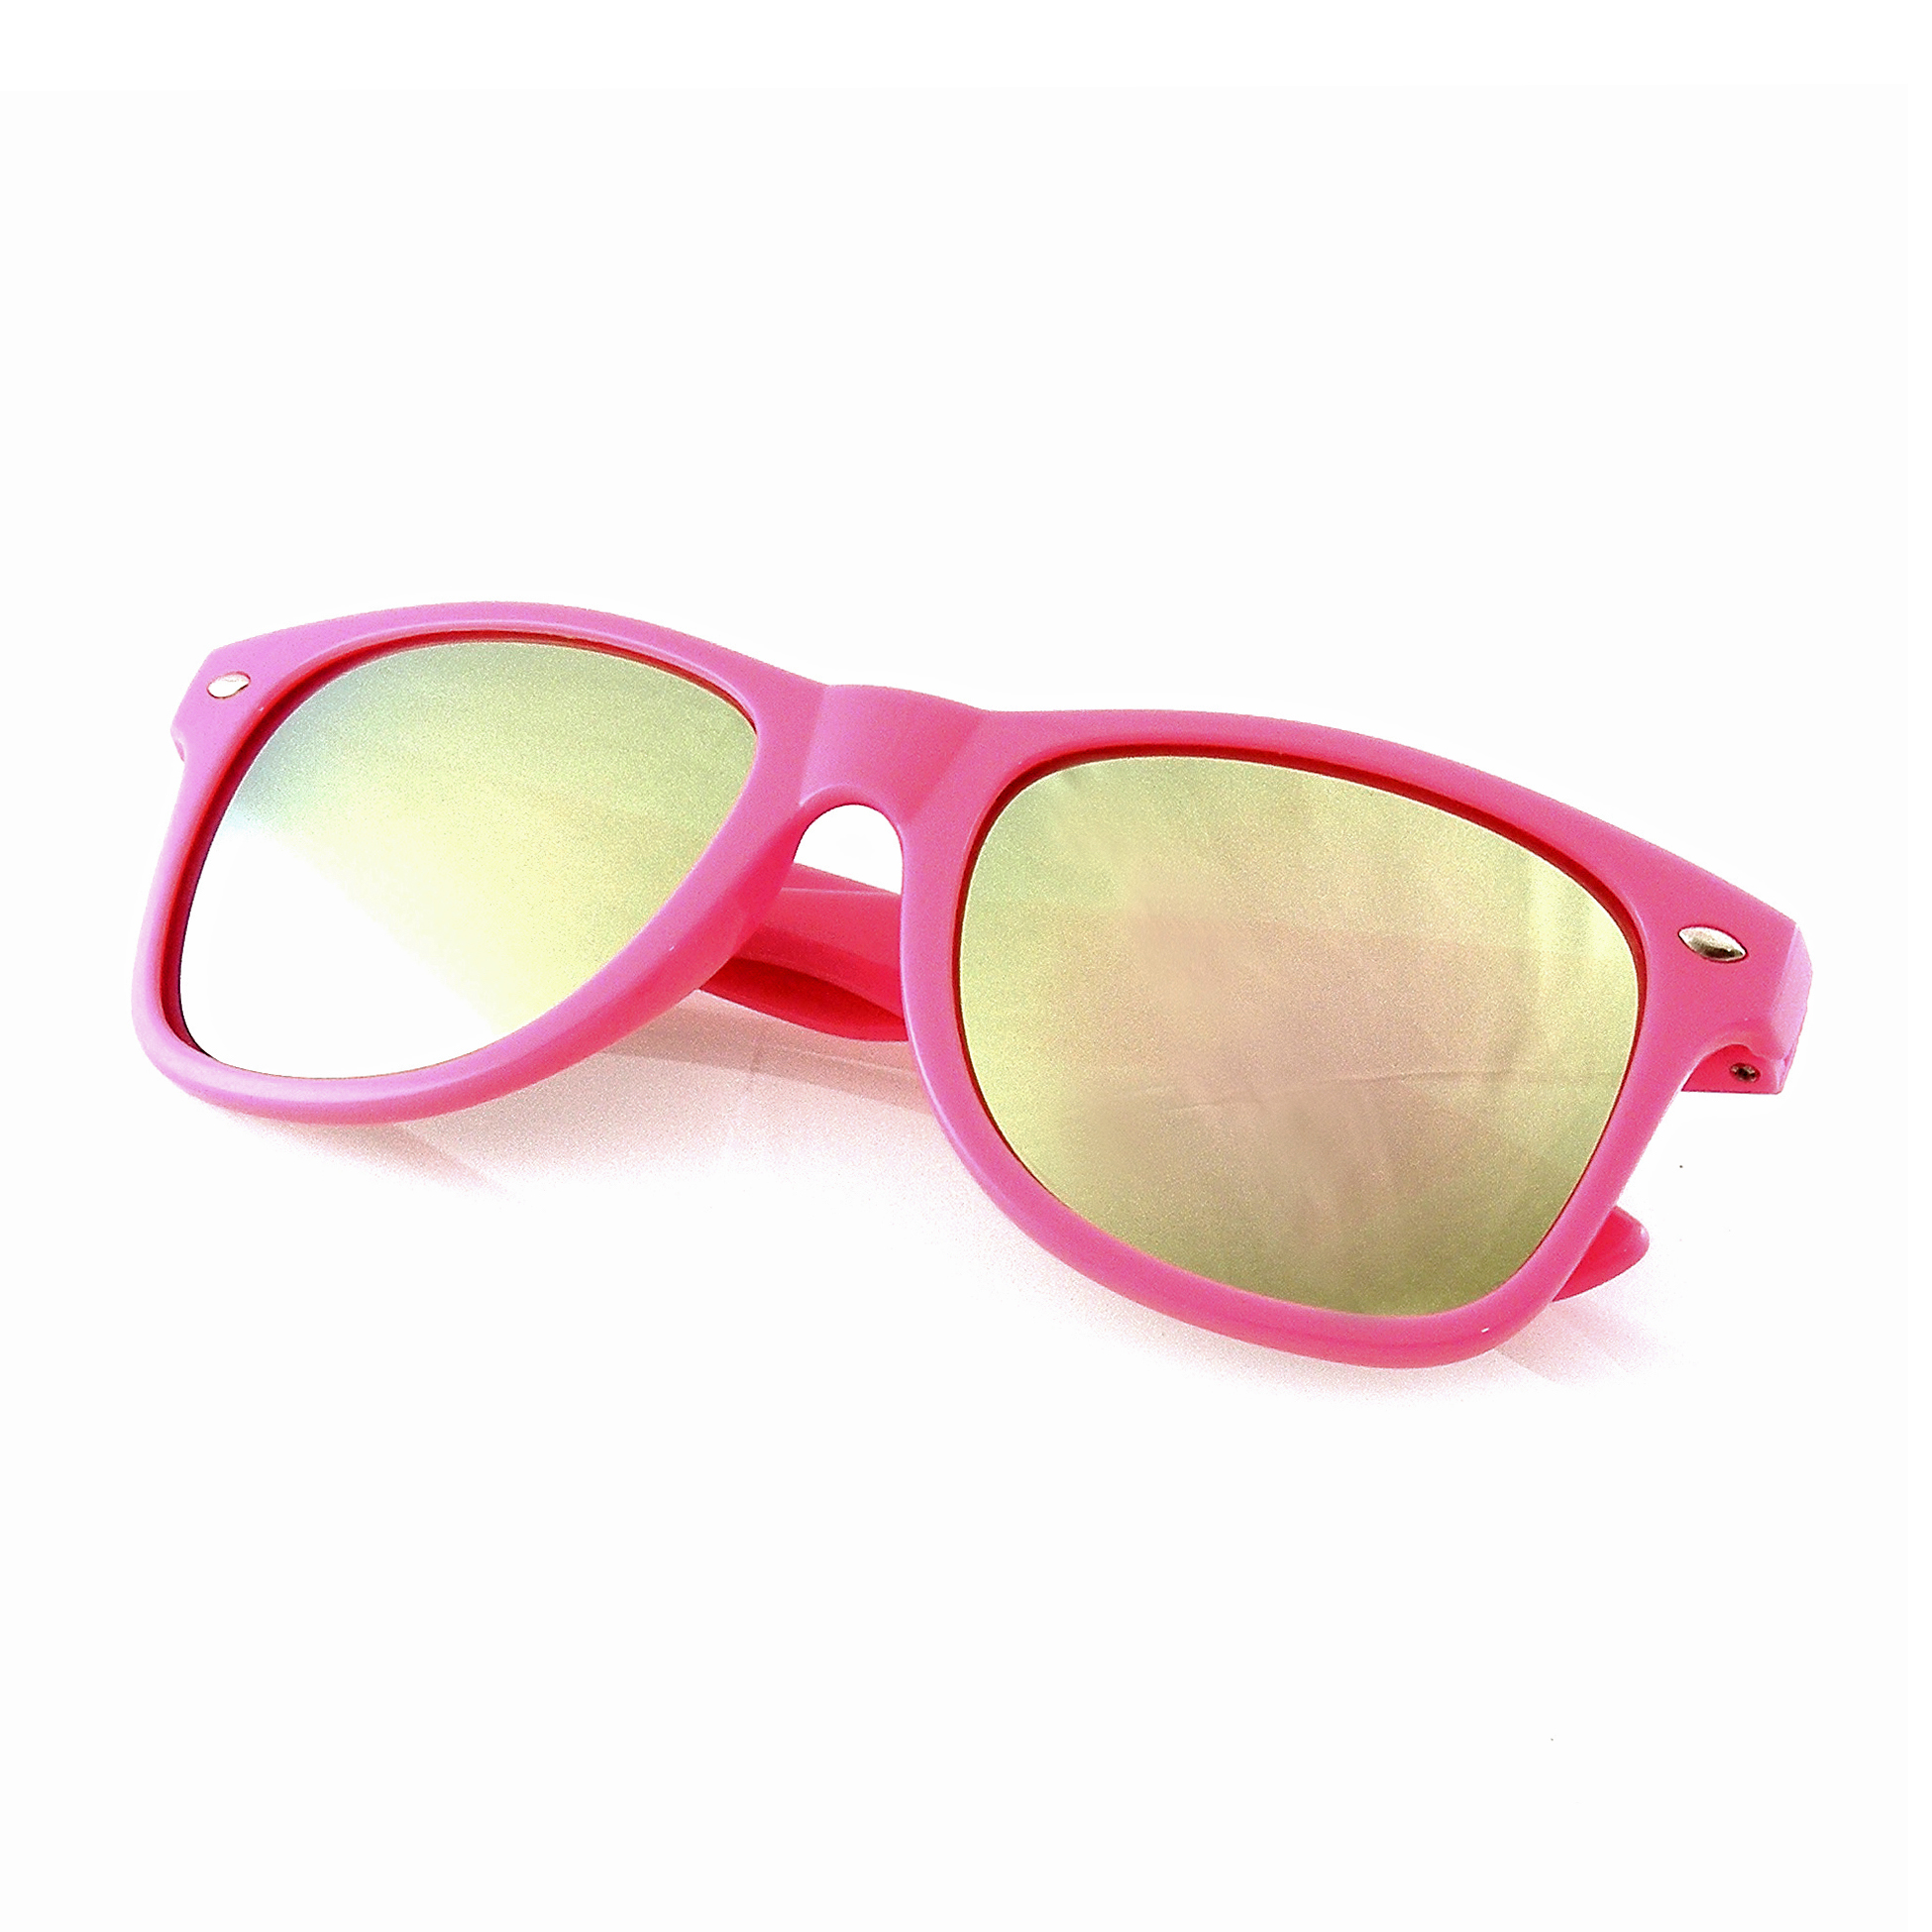 35f25c22cbf Flash Color Mirror Reflective Sunglasses · Emblem Eyewear · Online ...